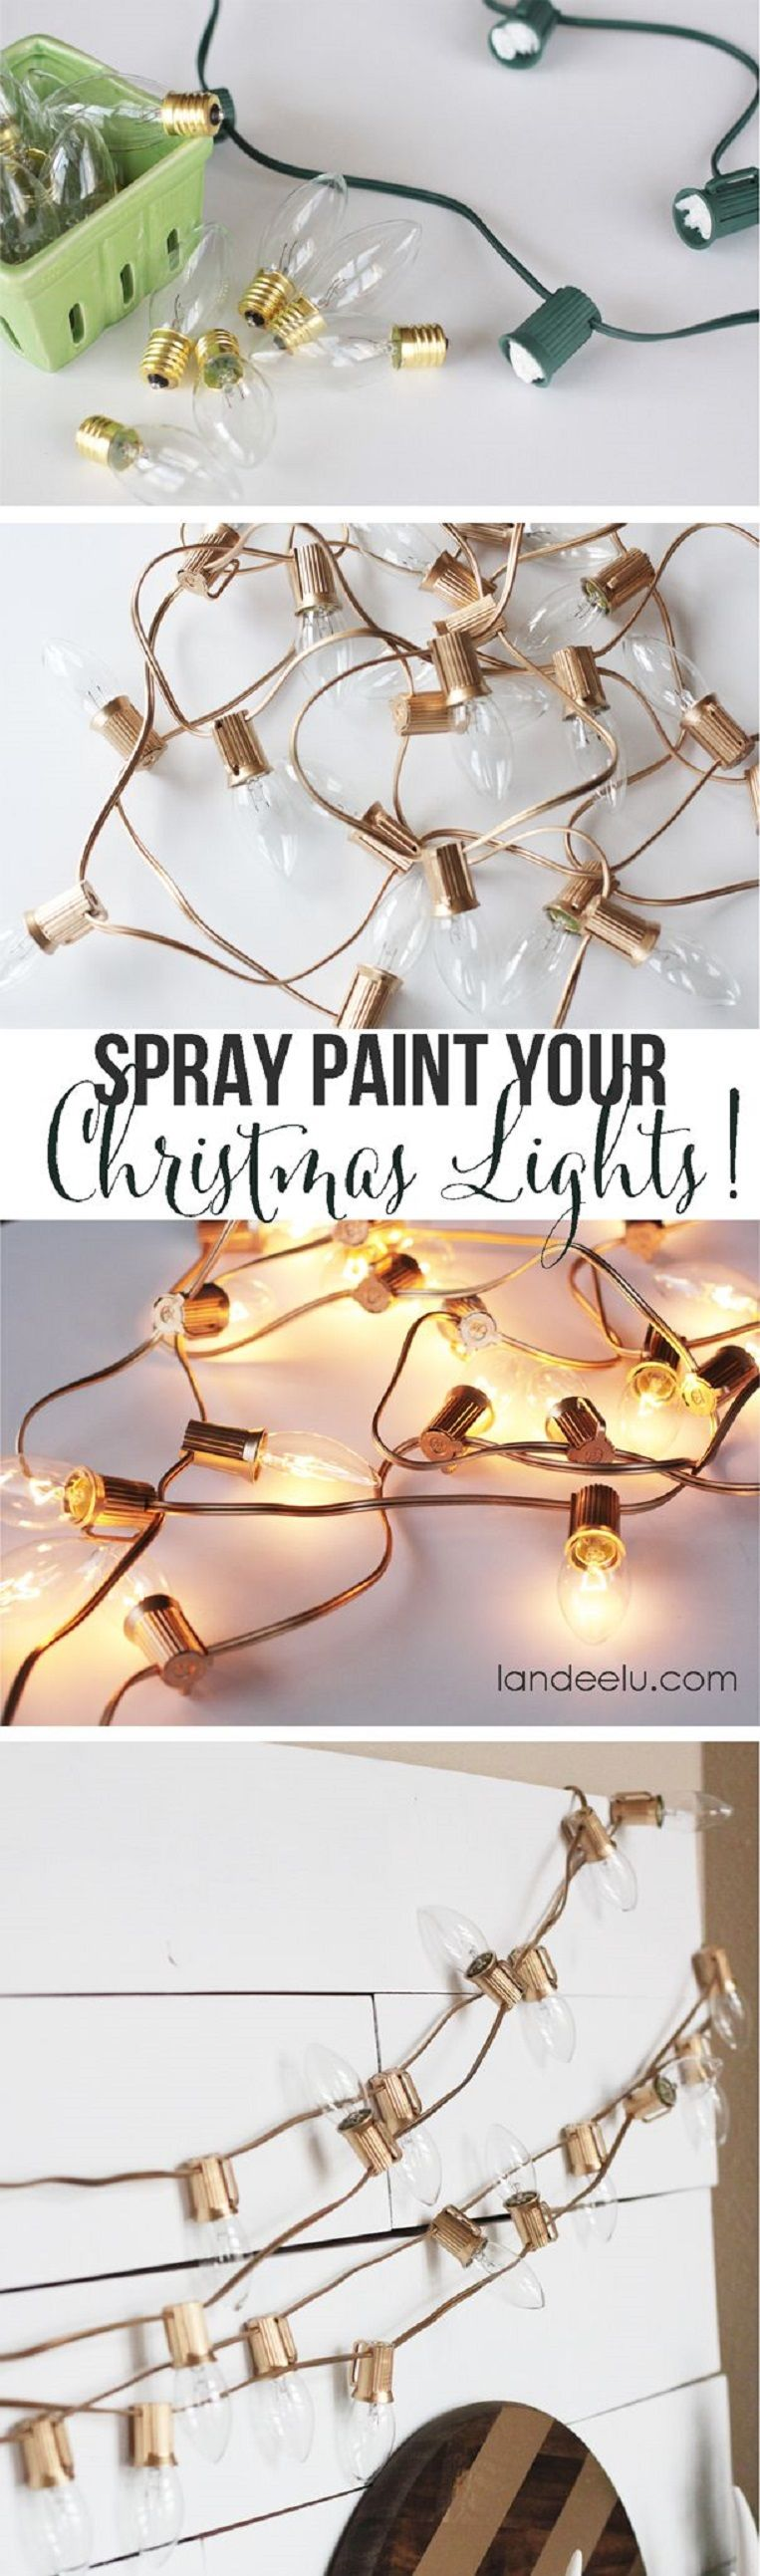 19 Super Cozy Ways To Use String Lights In Your Home | Christmas ...